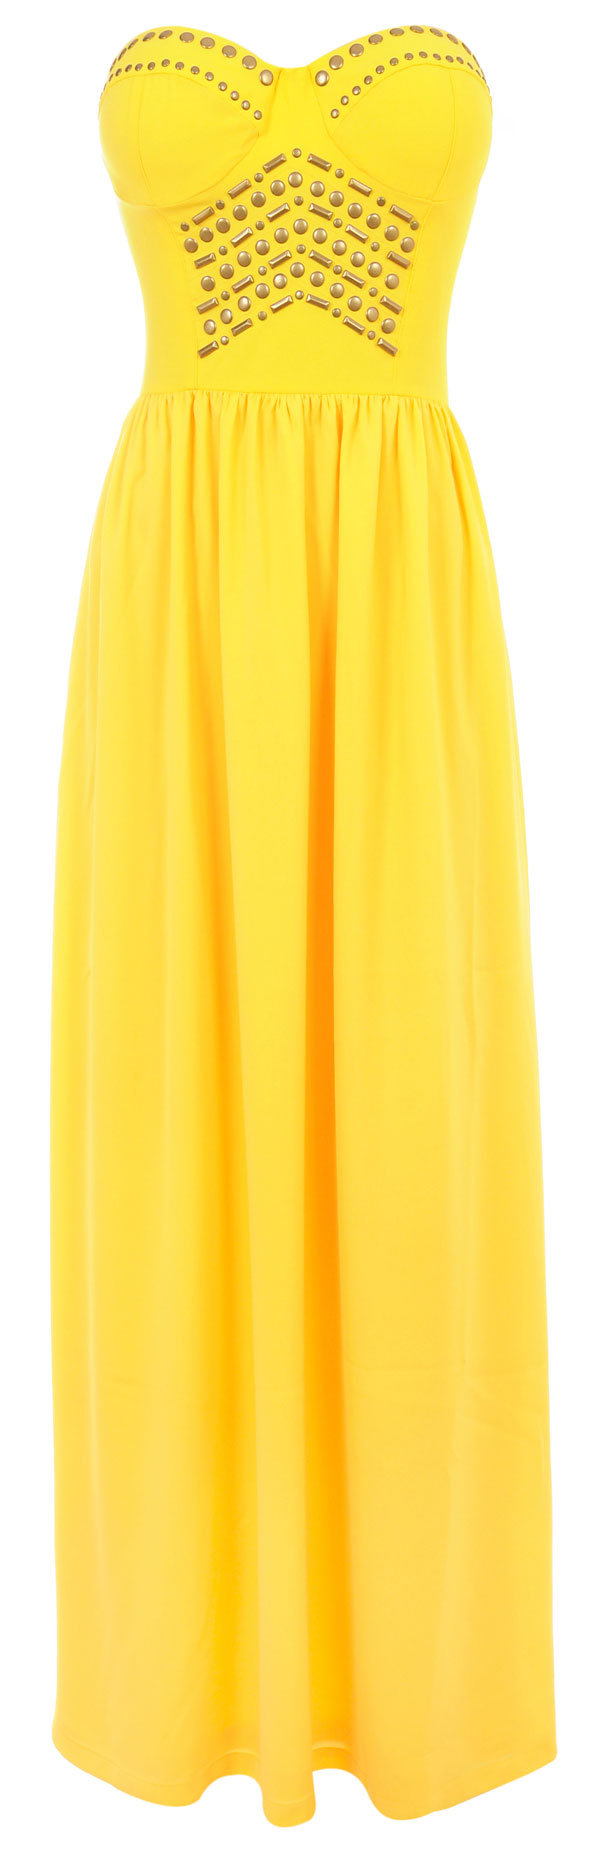 Clothing maxi dresses 39 chiara 39 yellow from celeb boutique for Yellow maxi dress for wedding